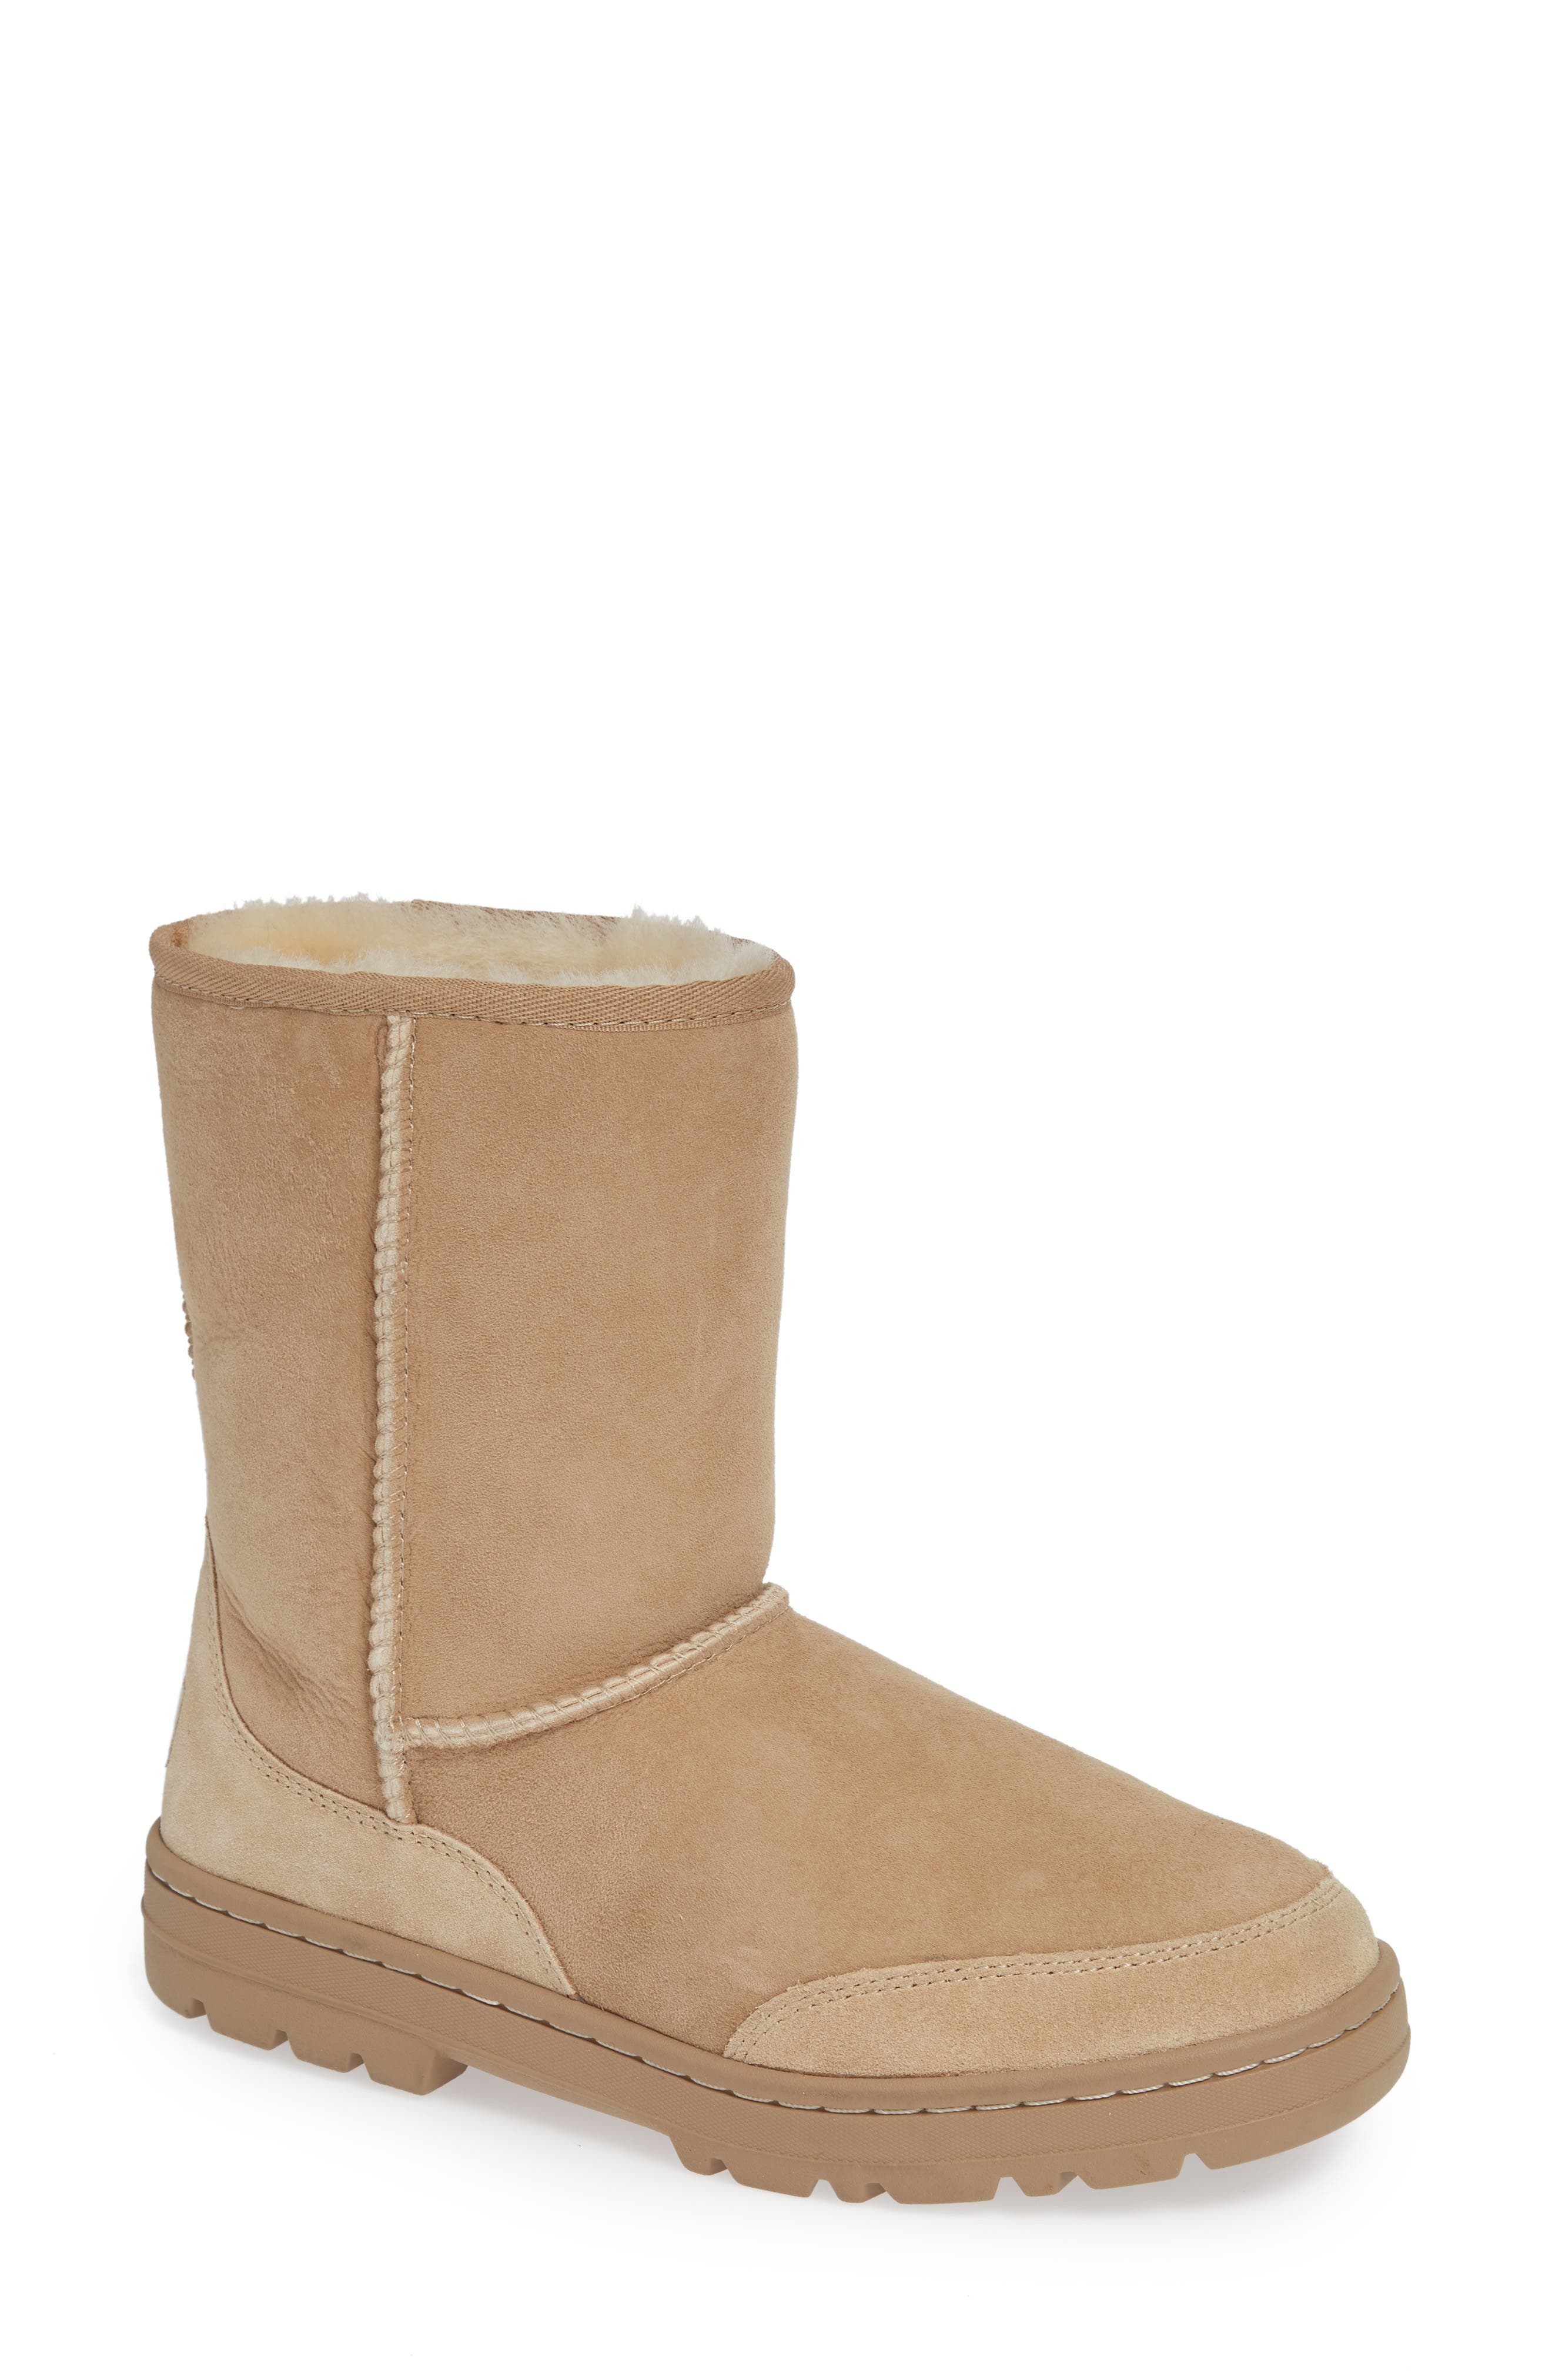 Ugg Ultra Revival Genuine Shearling Short Boot in Sand